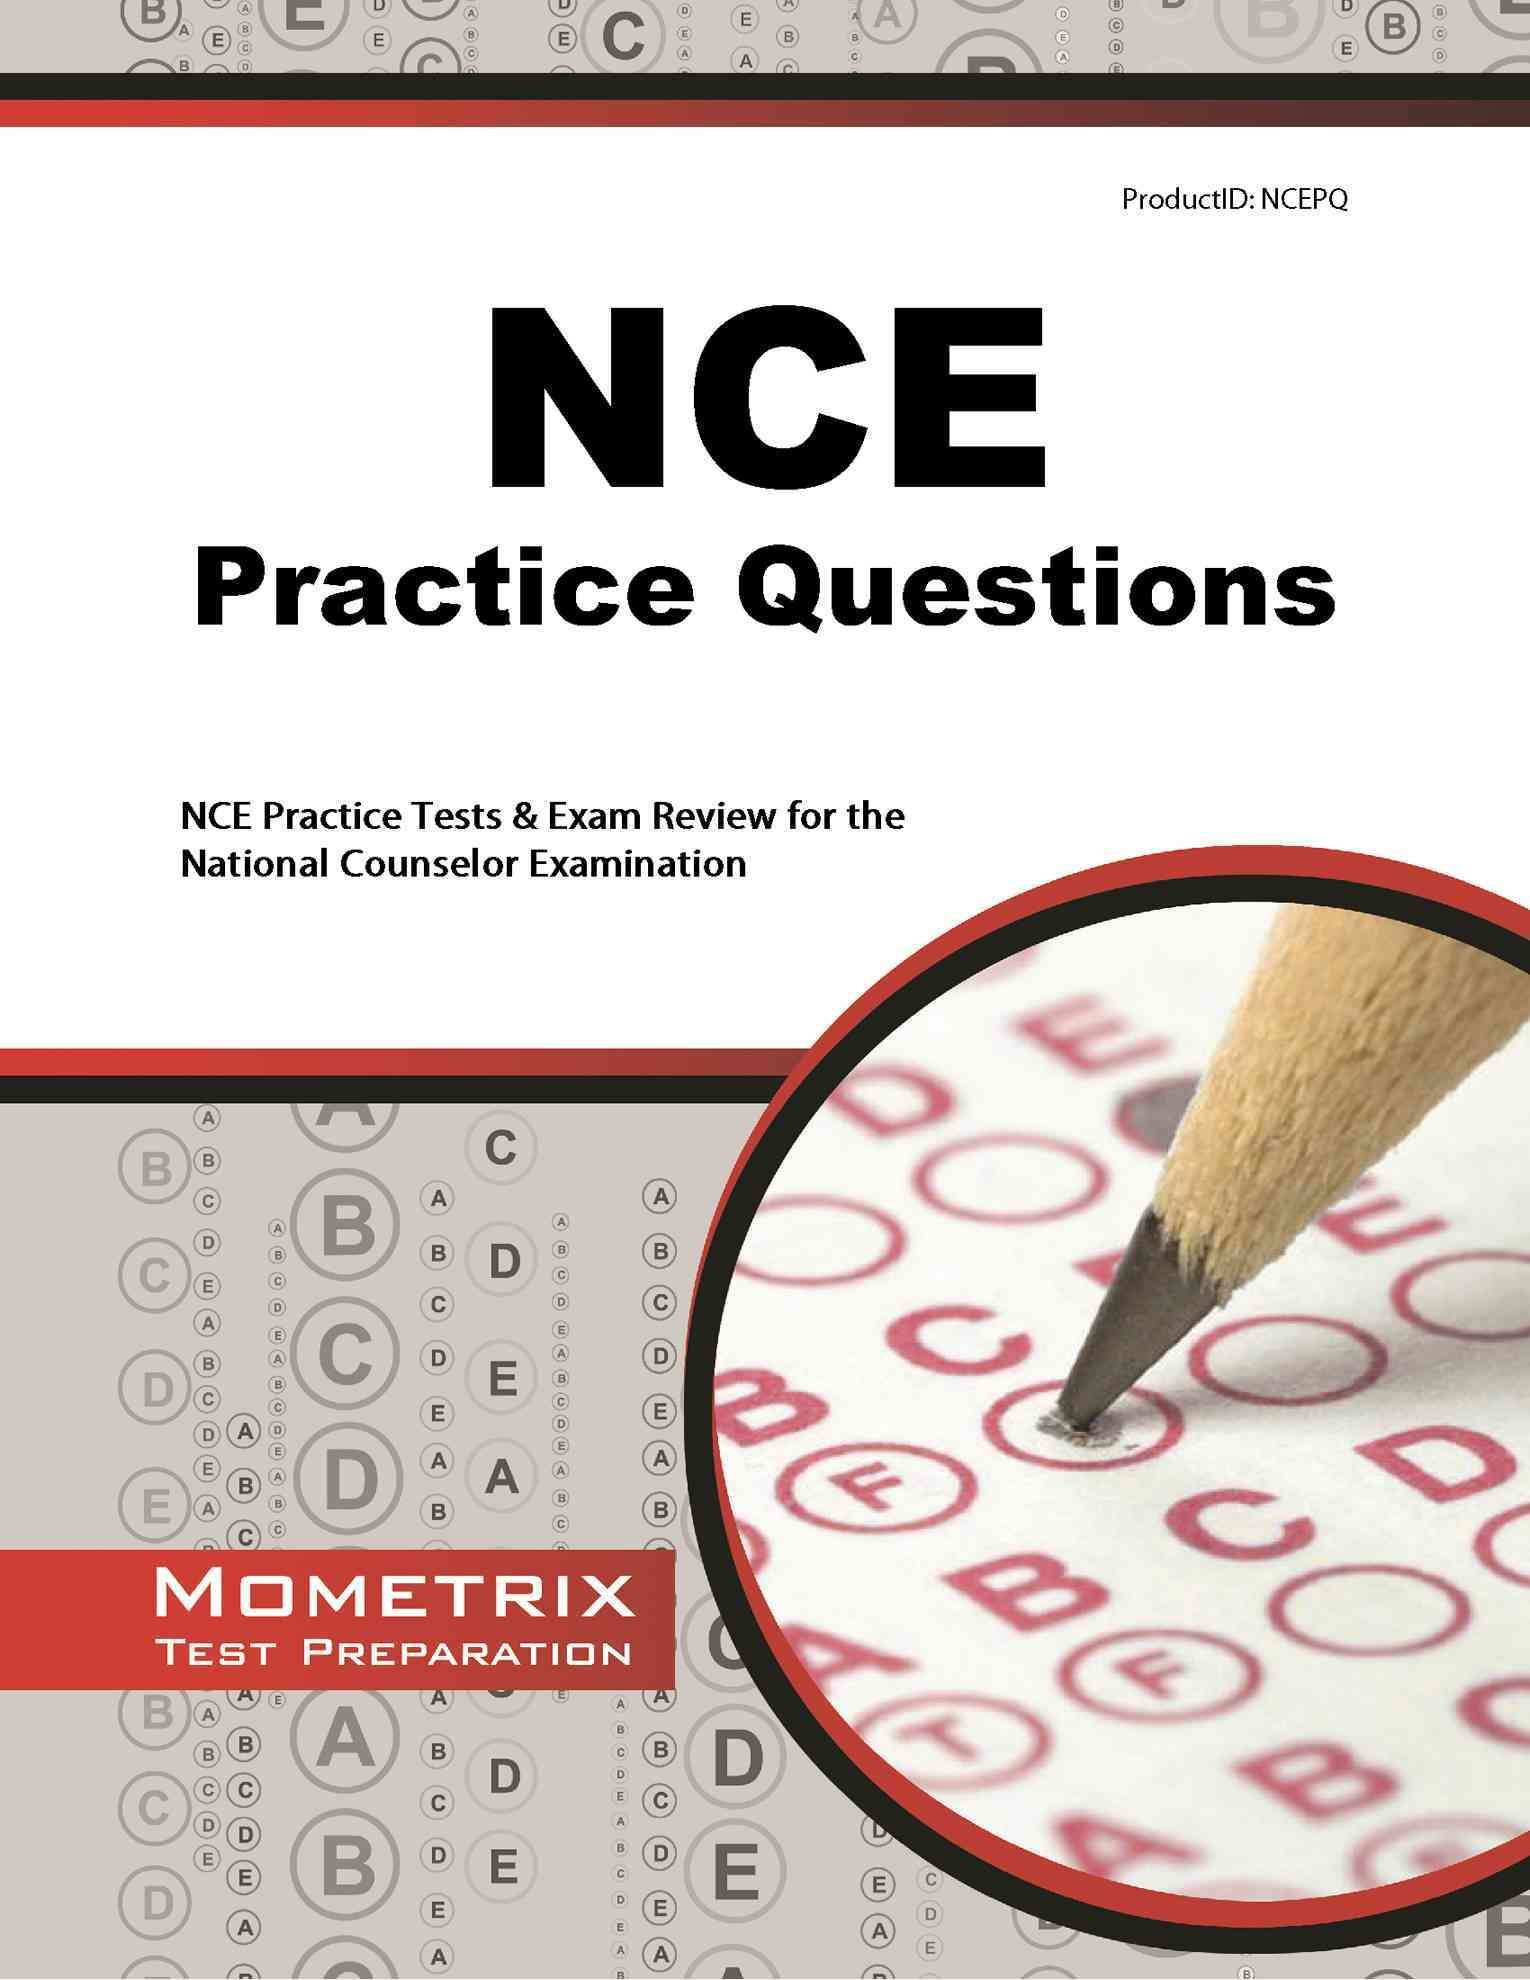 Nce Practice Questions Nce Practice Tests Exam Review For The National Counselor Examination Paperback Test Exam Practice Testing This Or That Questions